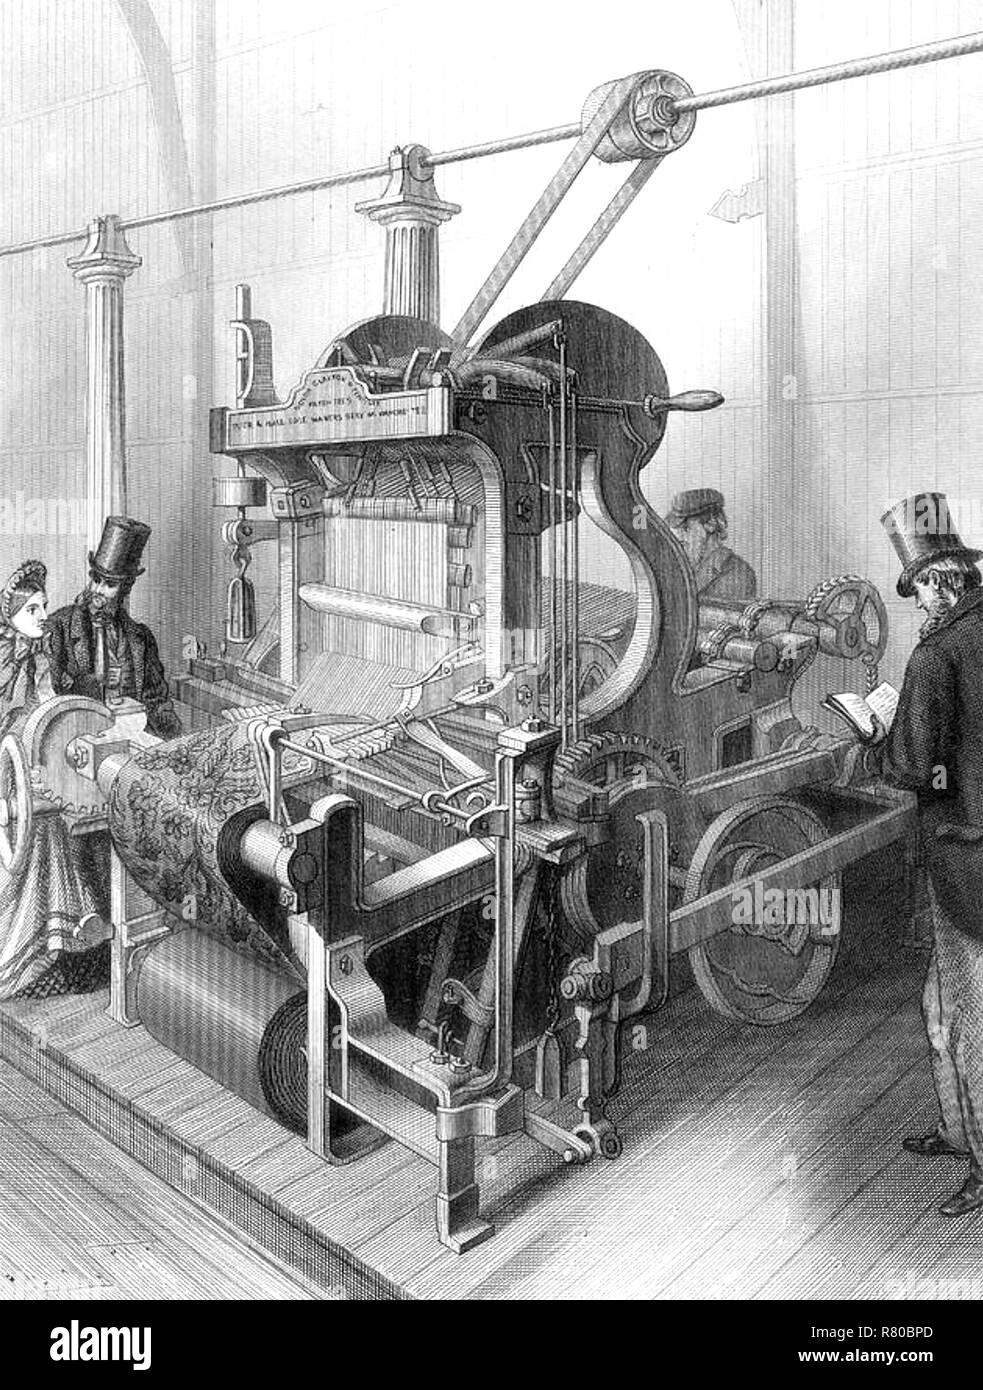 MOXTON & CO PATENTED CARPET LOOM which won a prize at the  1862 London International Exhibition in South Kensington. - Stock Image